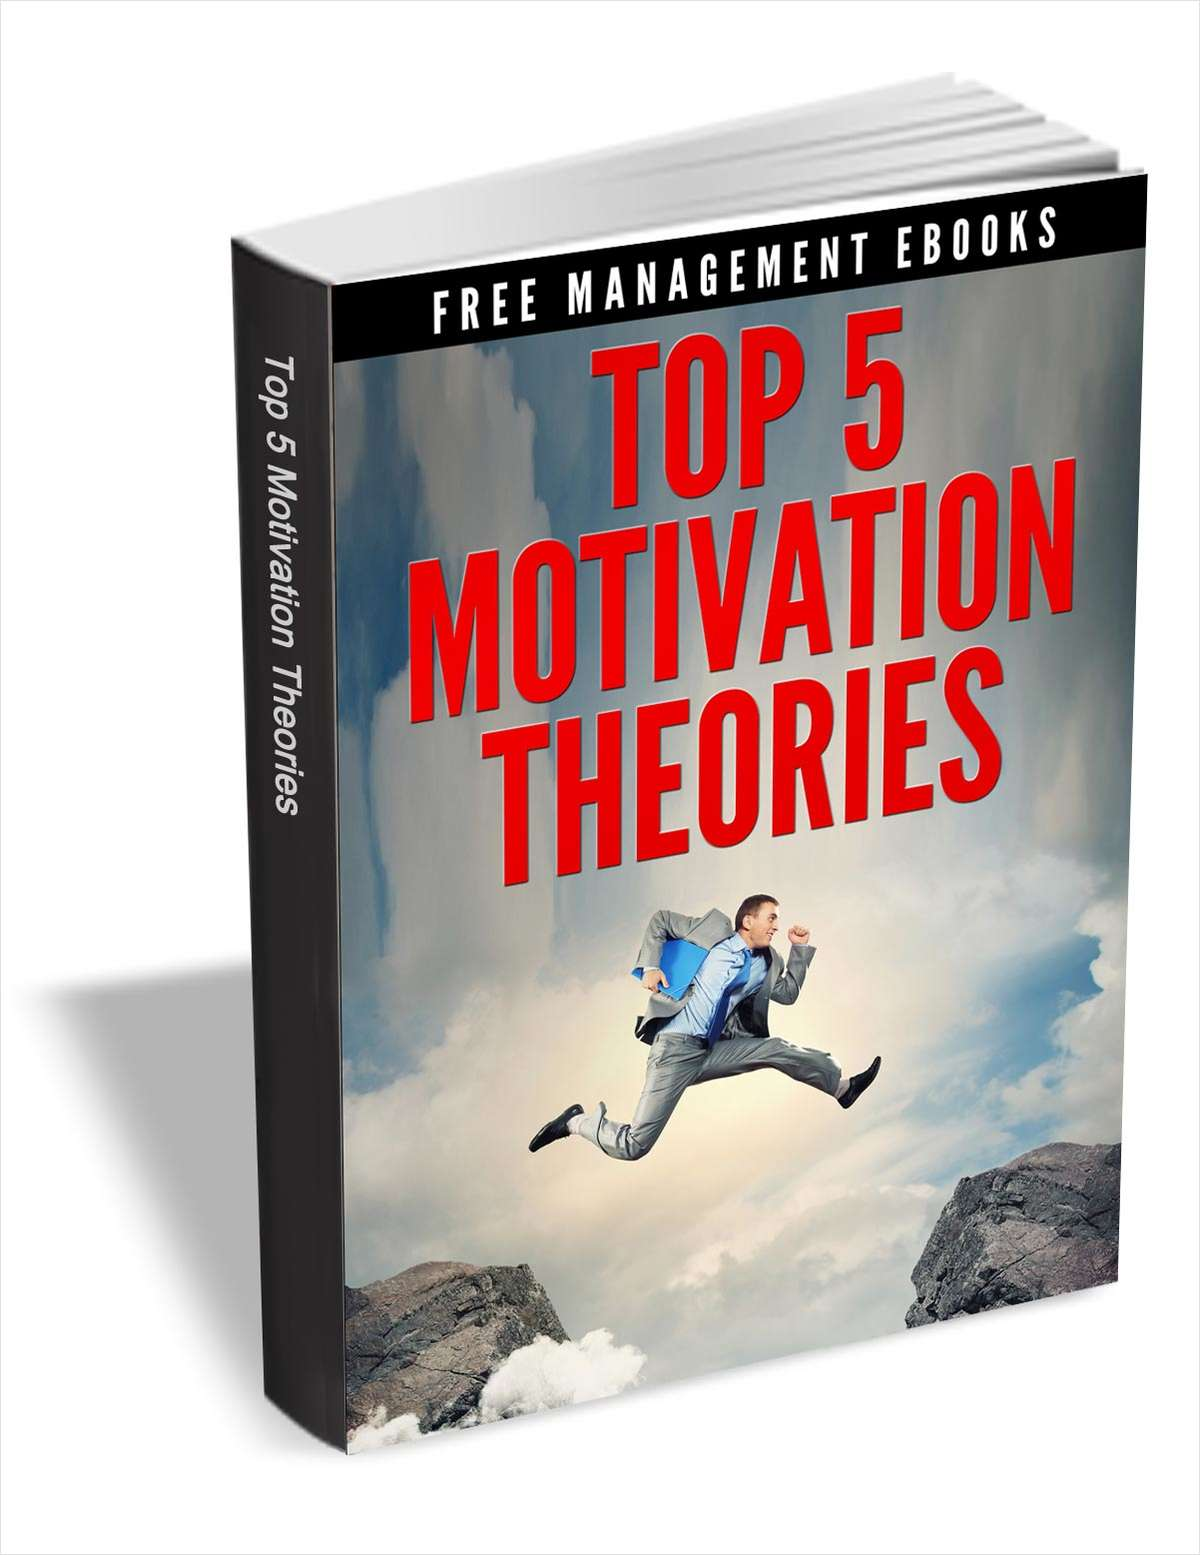 Top 5 Motivation Theories